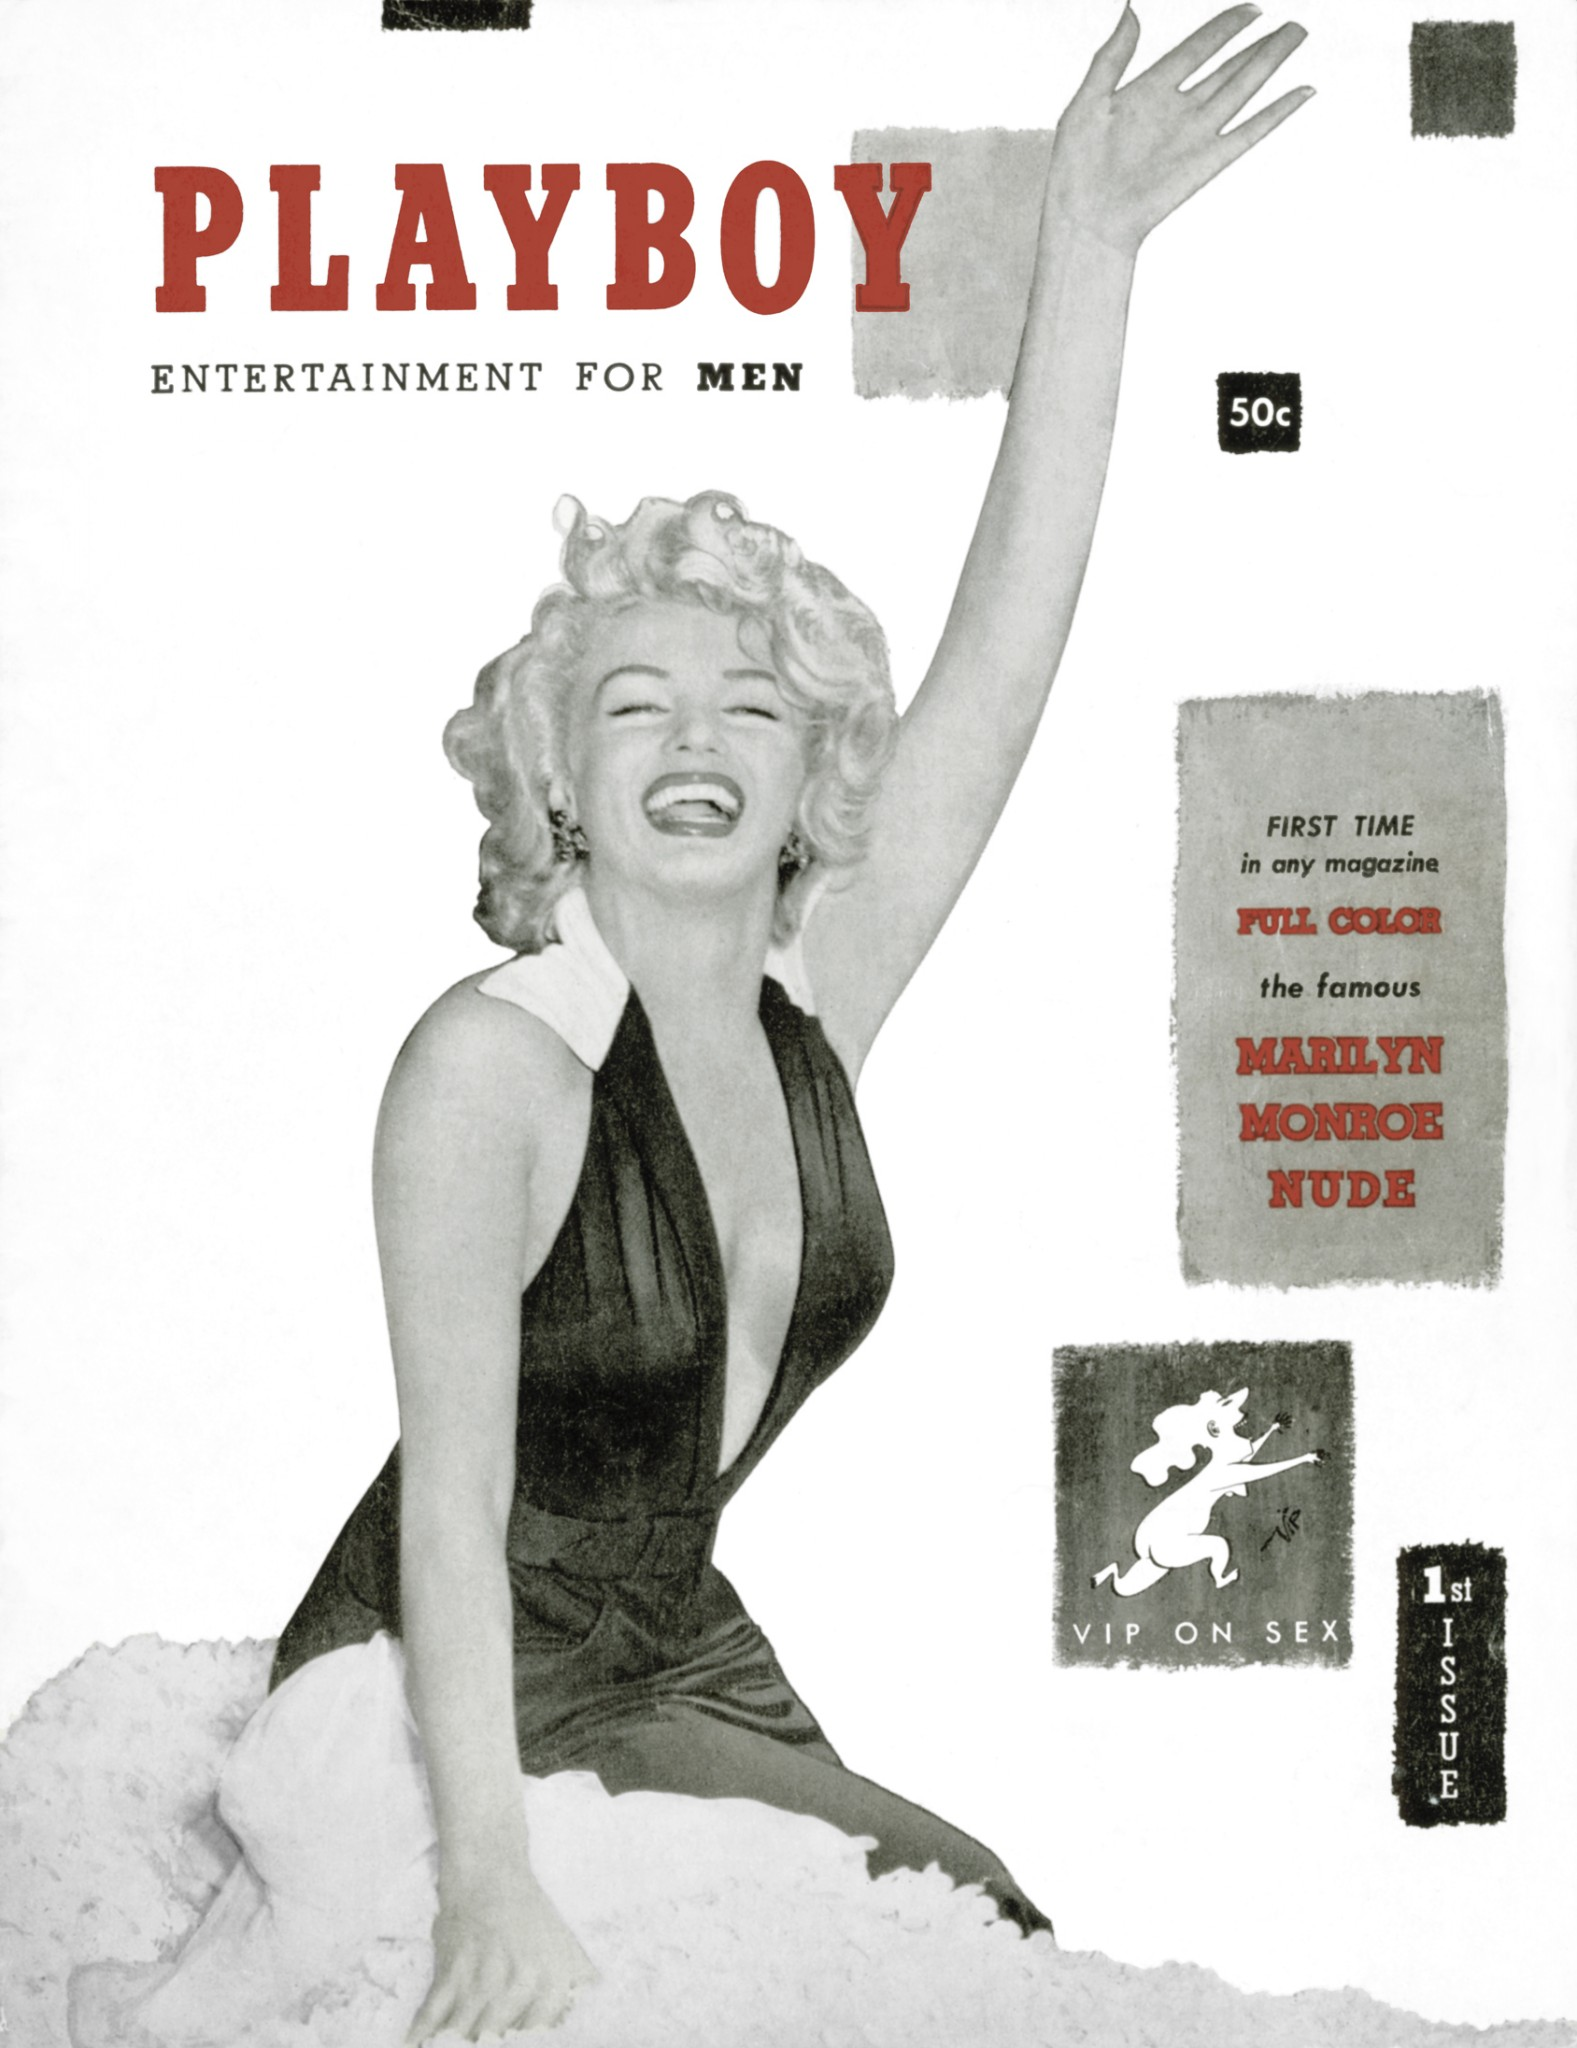 Marilyn Monroe iconic Playboy covers Loaded